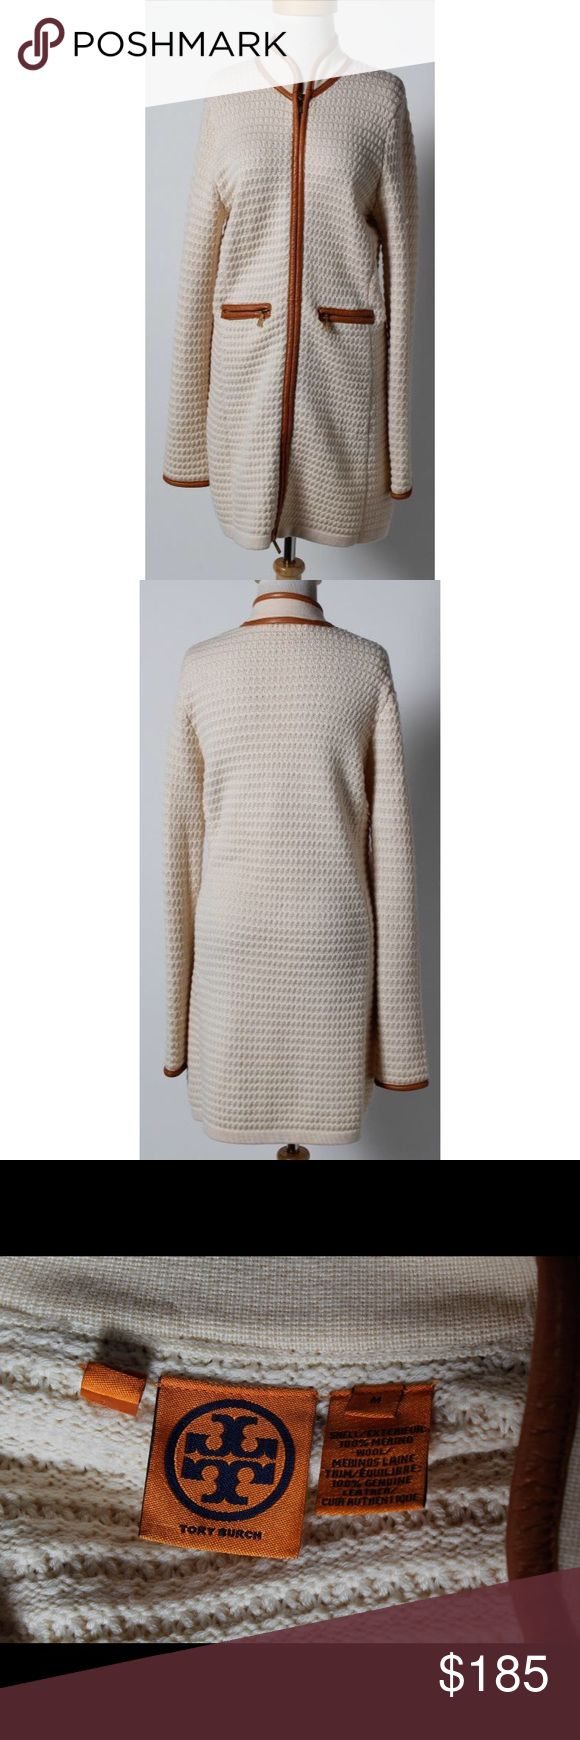 Tory Burch Merino Wool Leather Trim Sweater Jacket Luscious Tory Burch merino wool and leather trimmed sweater jacket. Absolutely gorgeous! Perfect for keeping cozy day to night. No stains, pulls or odors. Like new. Tory Burch Jackets & Coats